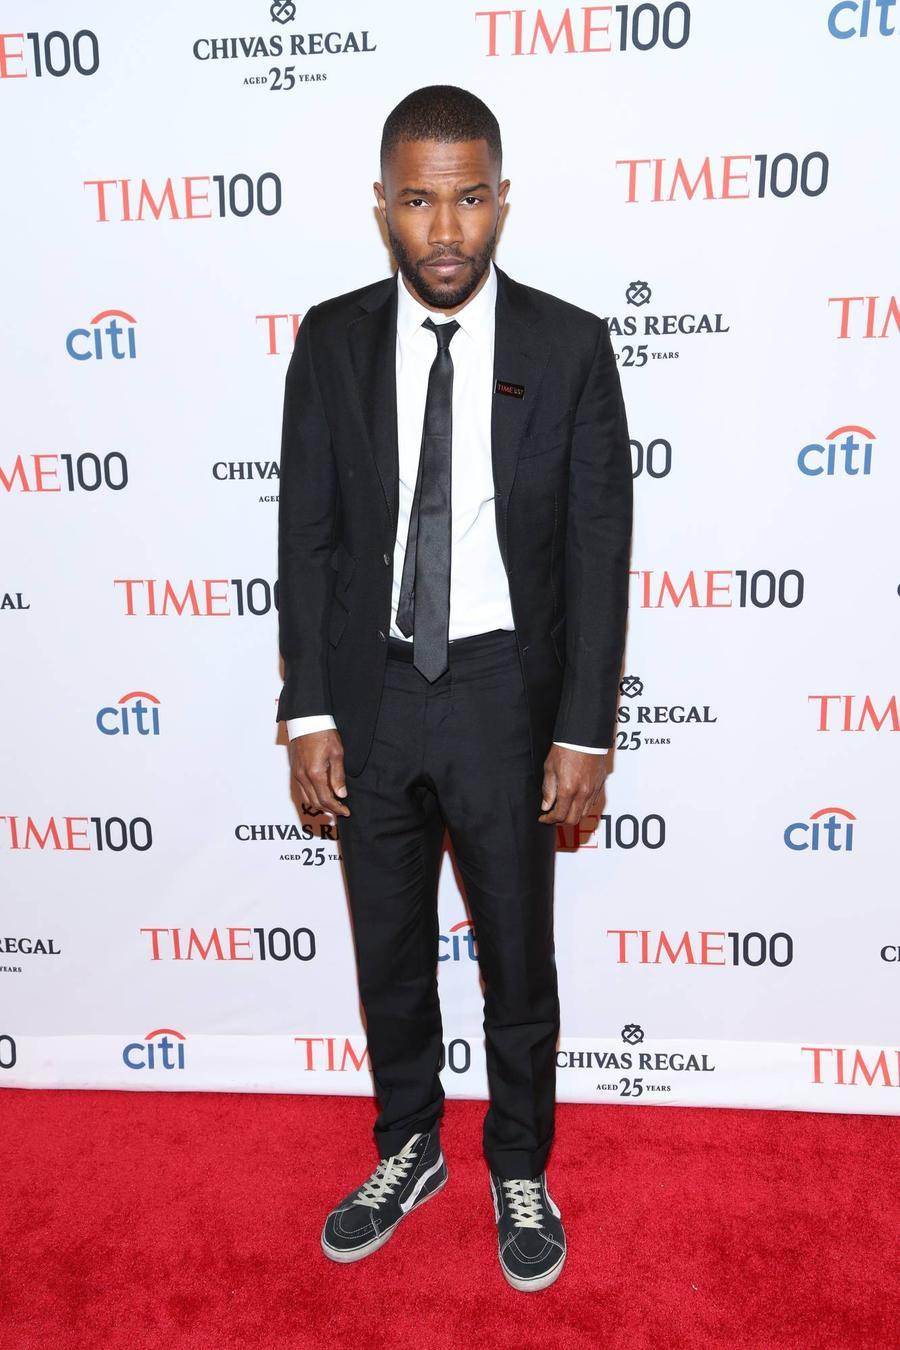 Frank Ocean Finally Releases Long-awaited Album